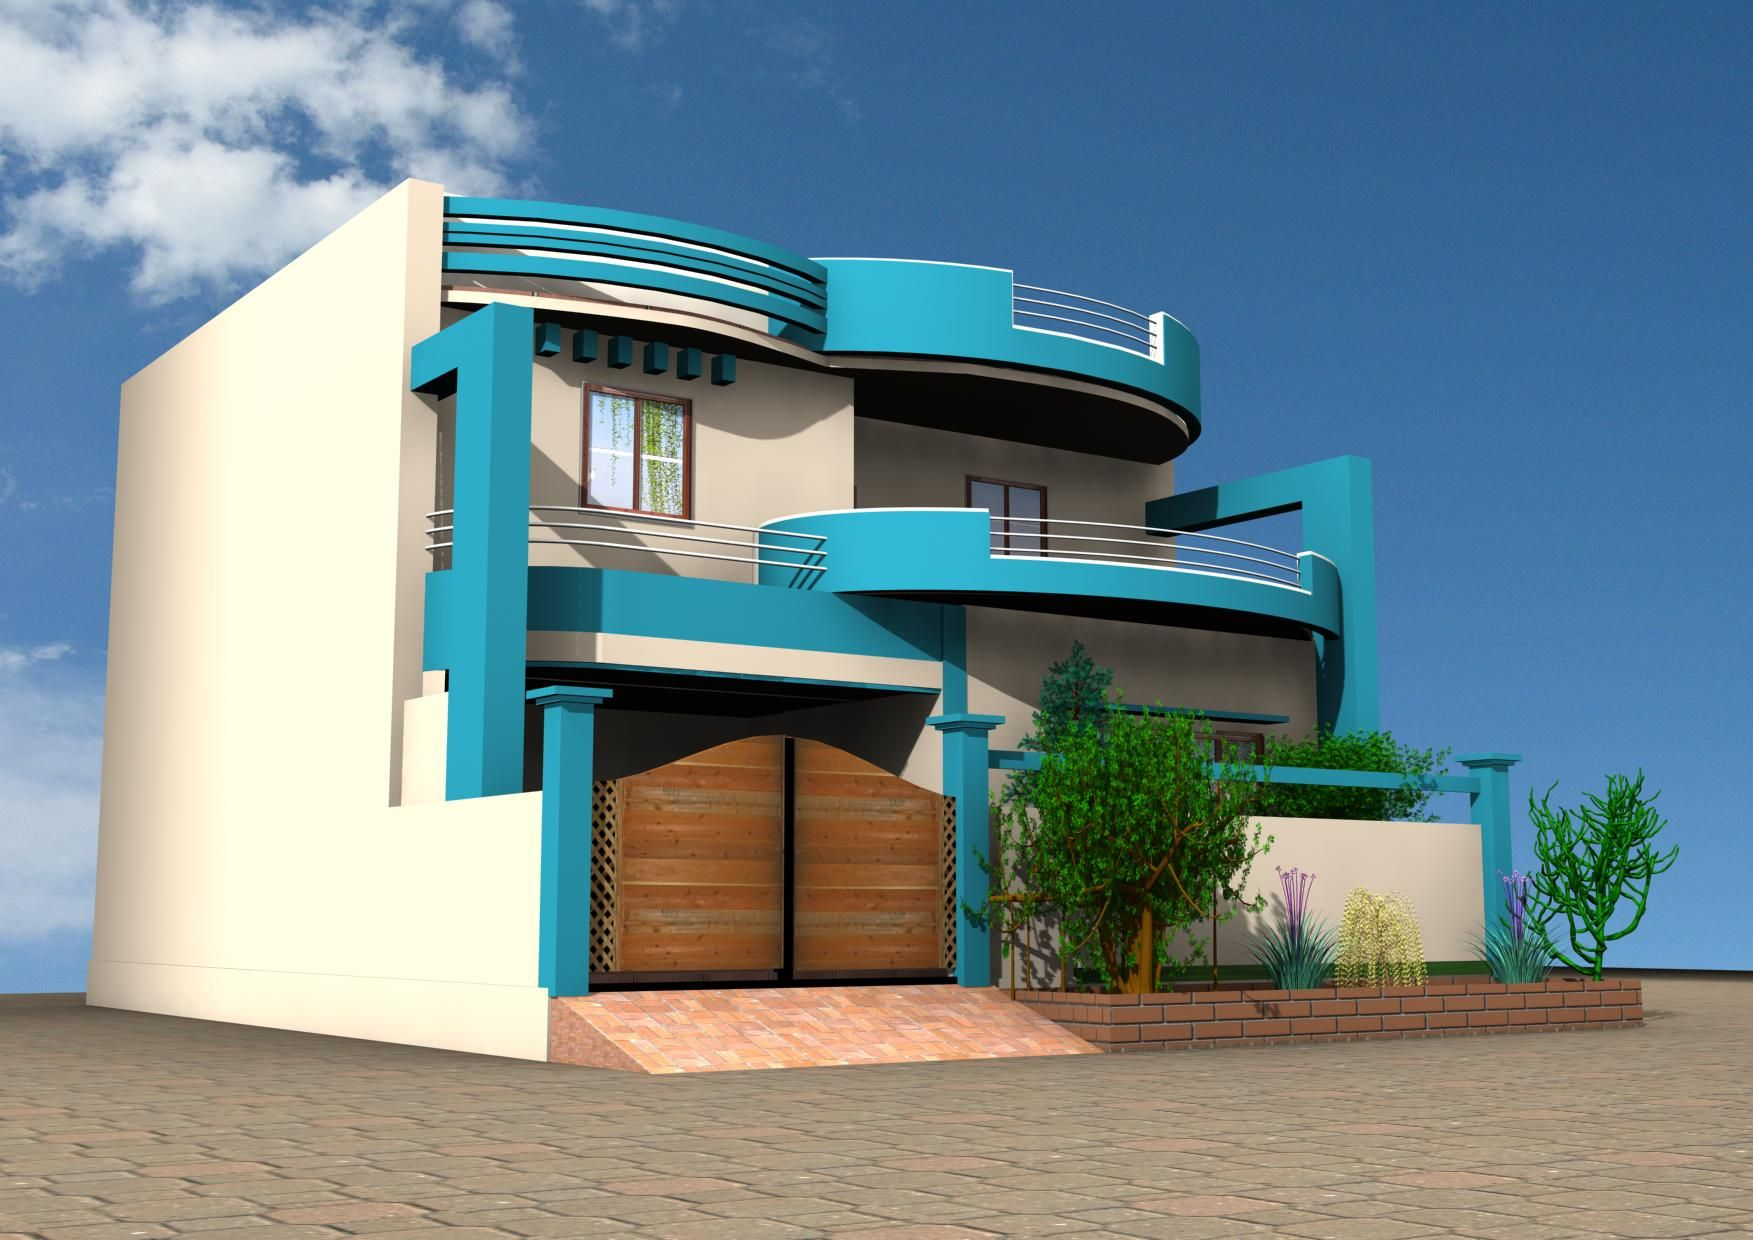 3d home design images hd 1080p for Online 3d building design